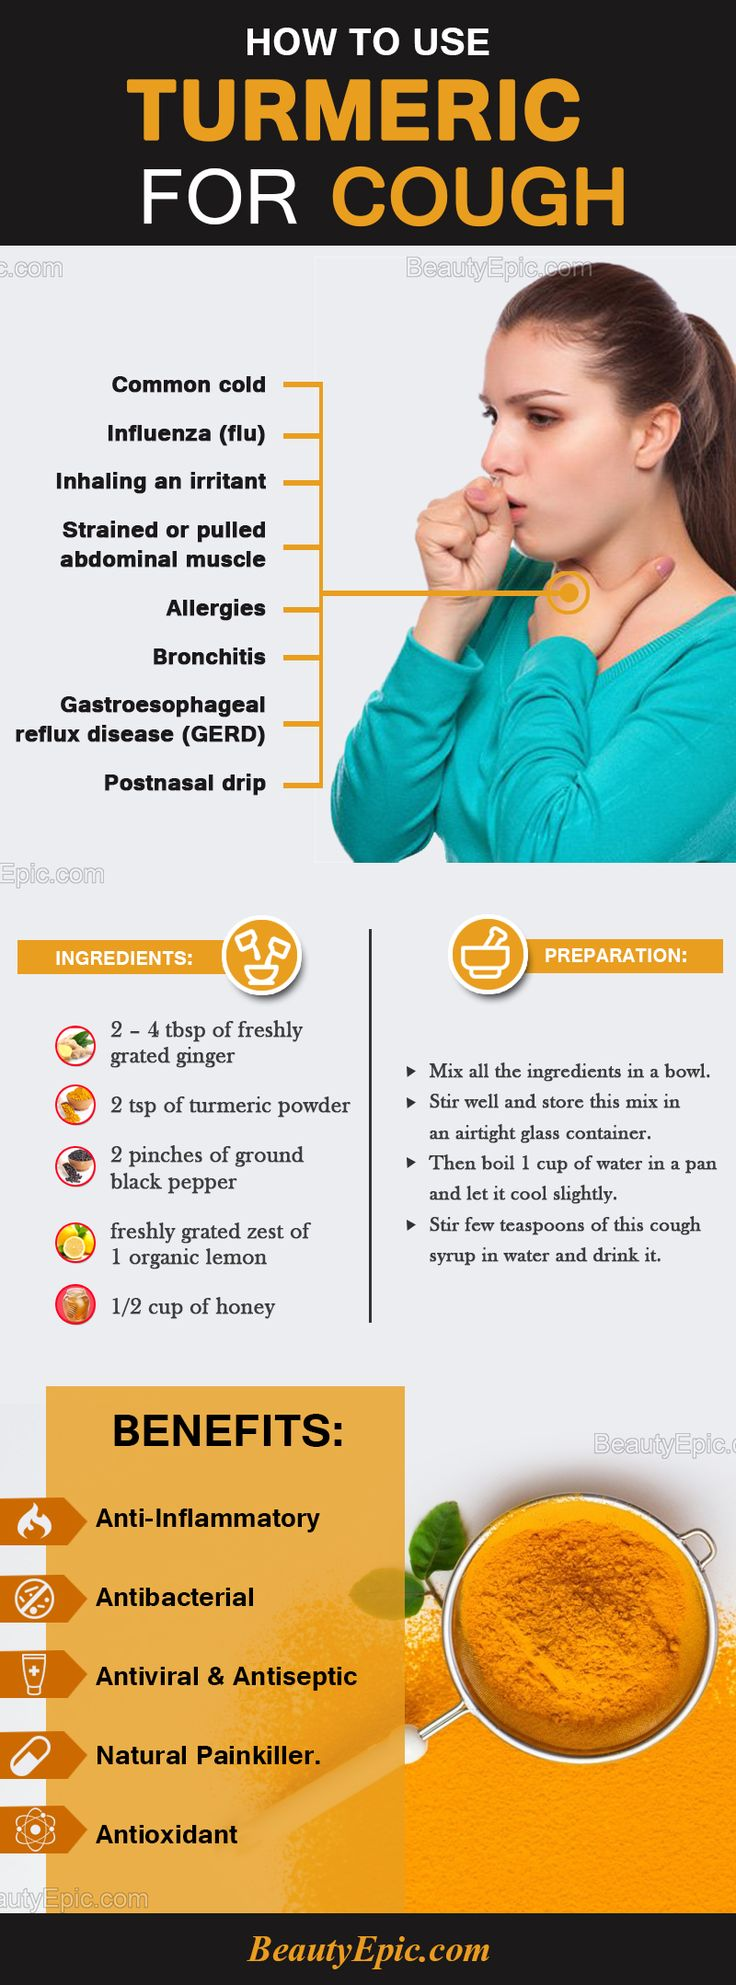 How to Use Turmeric for Cough